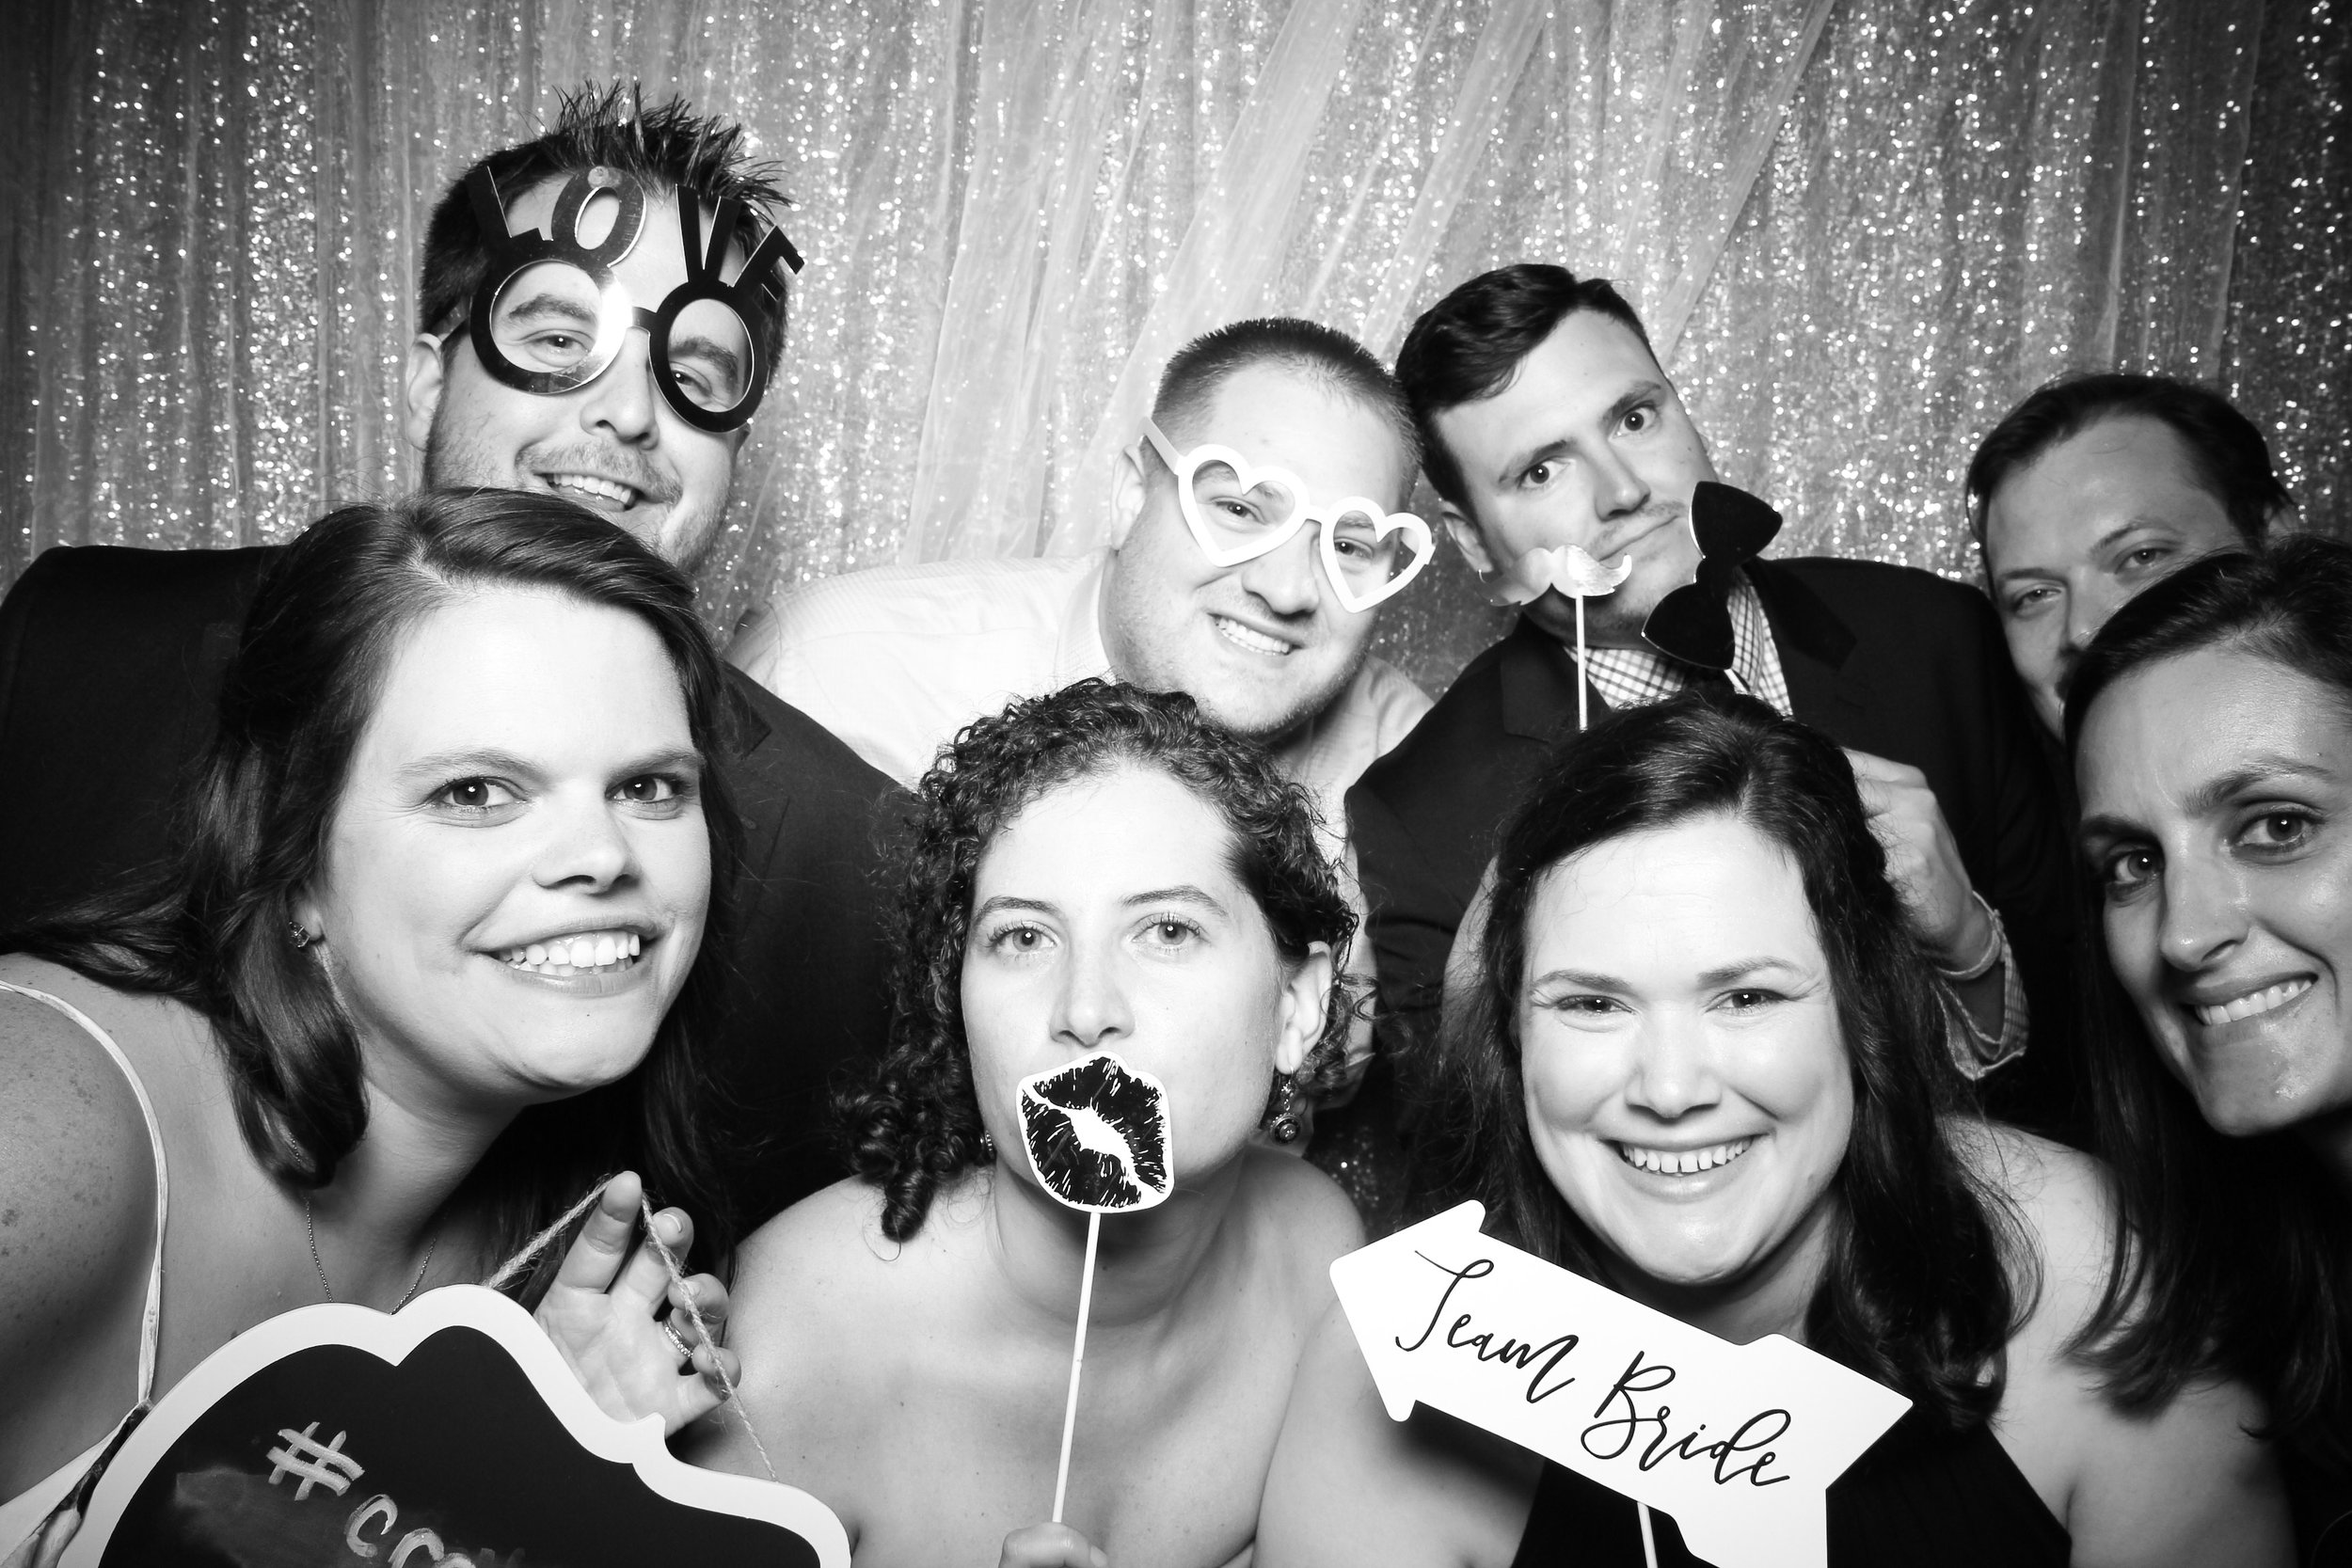 Chicago_Vintage_Wedding_Photobooth_Adler_Planetarium_14.jpg